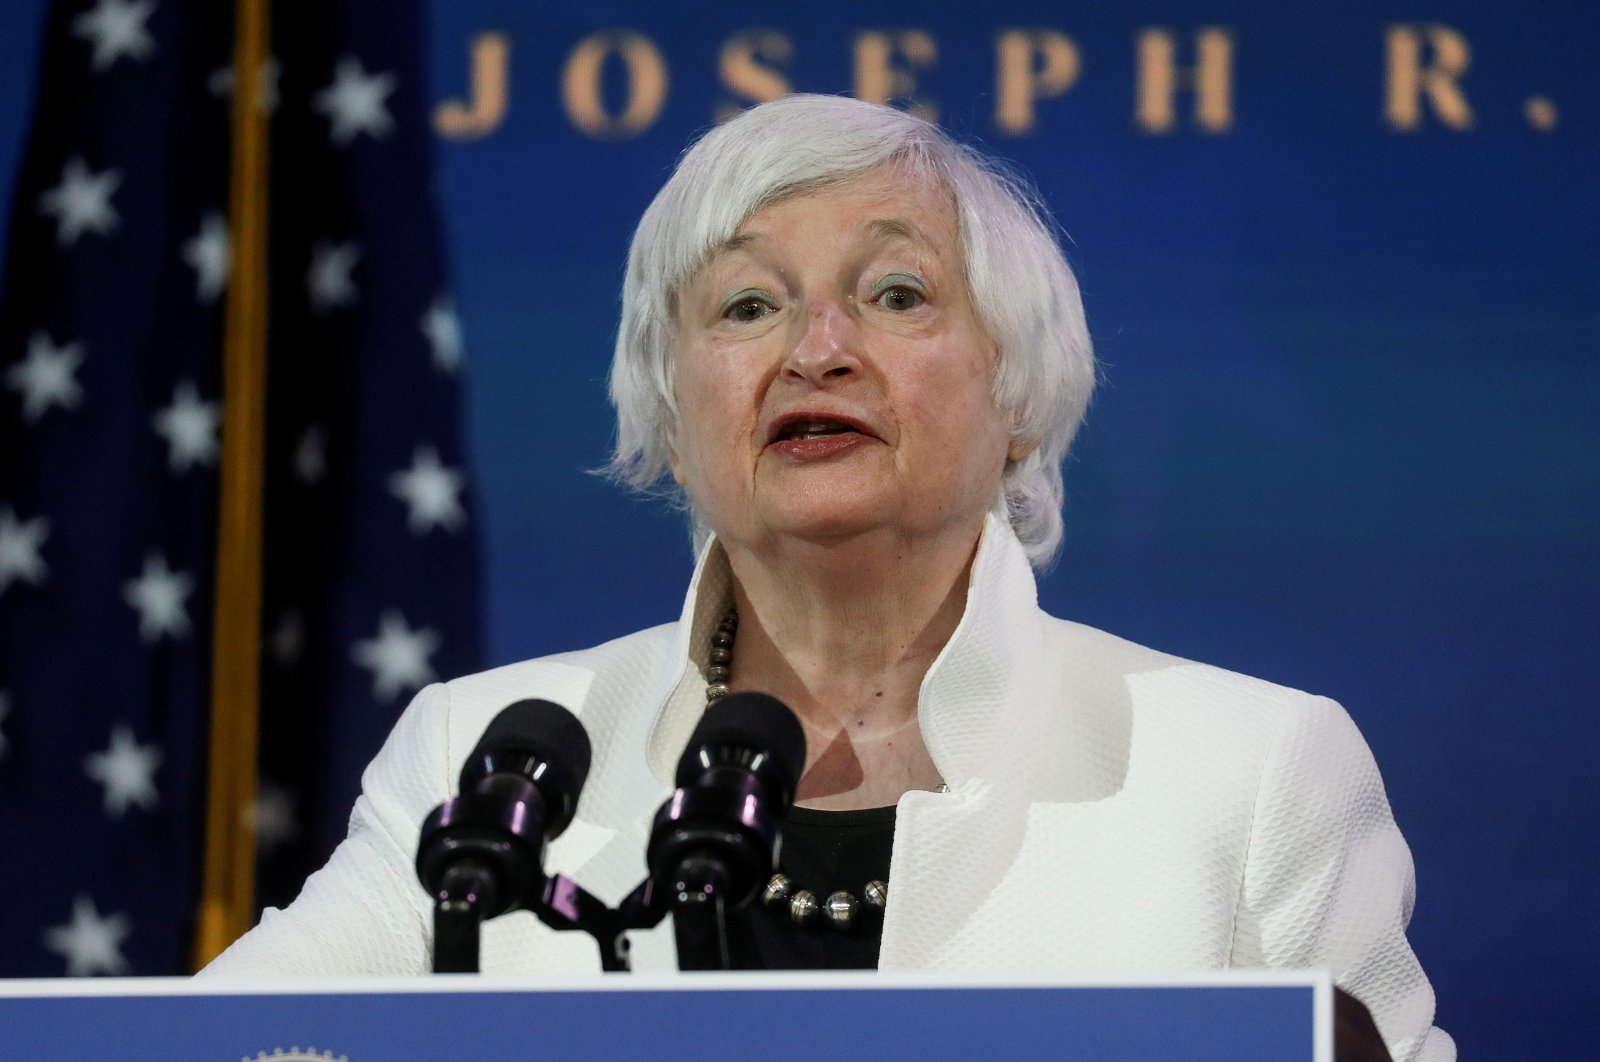 Former chairperson of the Federal Reserve and U.S. President-elect Joe Biden's nominee for the Treasury, Janet Yellen gives a speech at the Office of the President-elect in Washington, D.C., Jan. 12, 2020. (Reuters Photo)